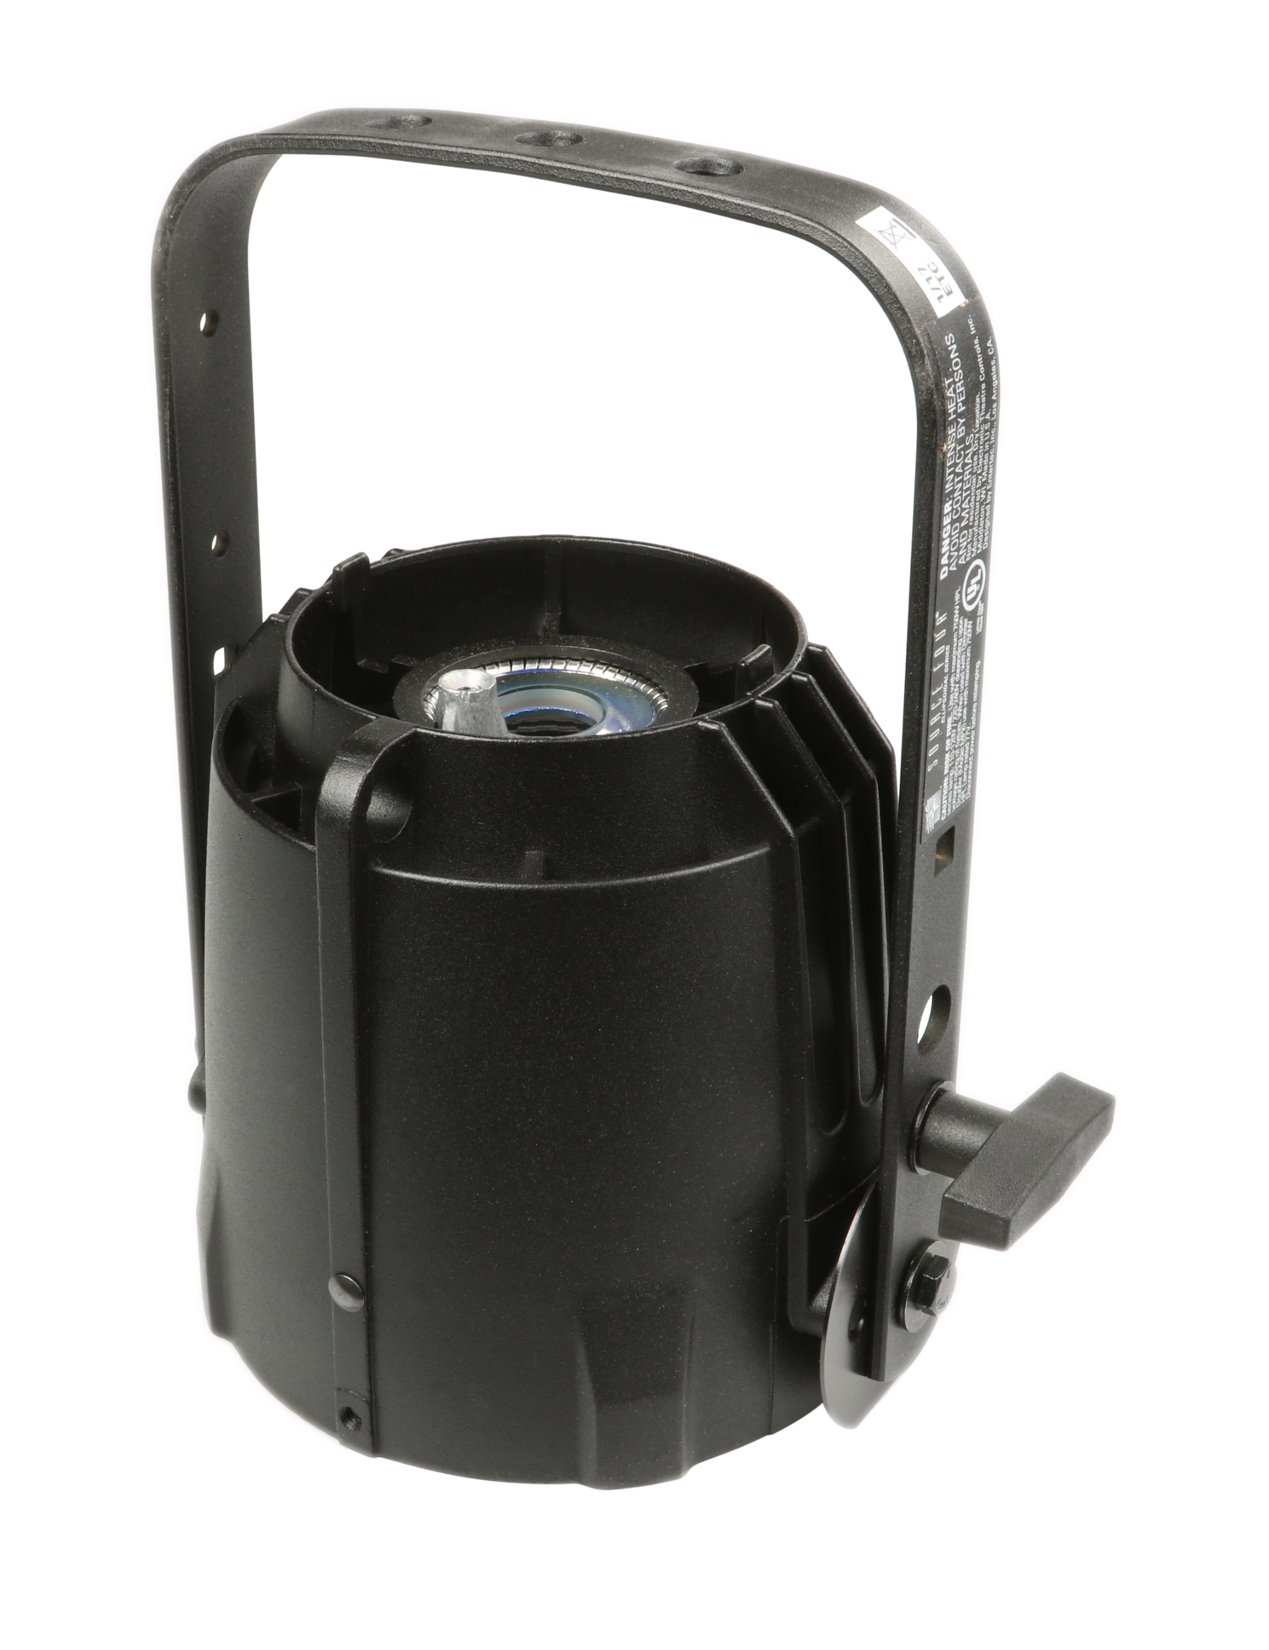 Reflector Housing Assembly for S4-750